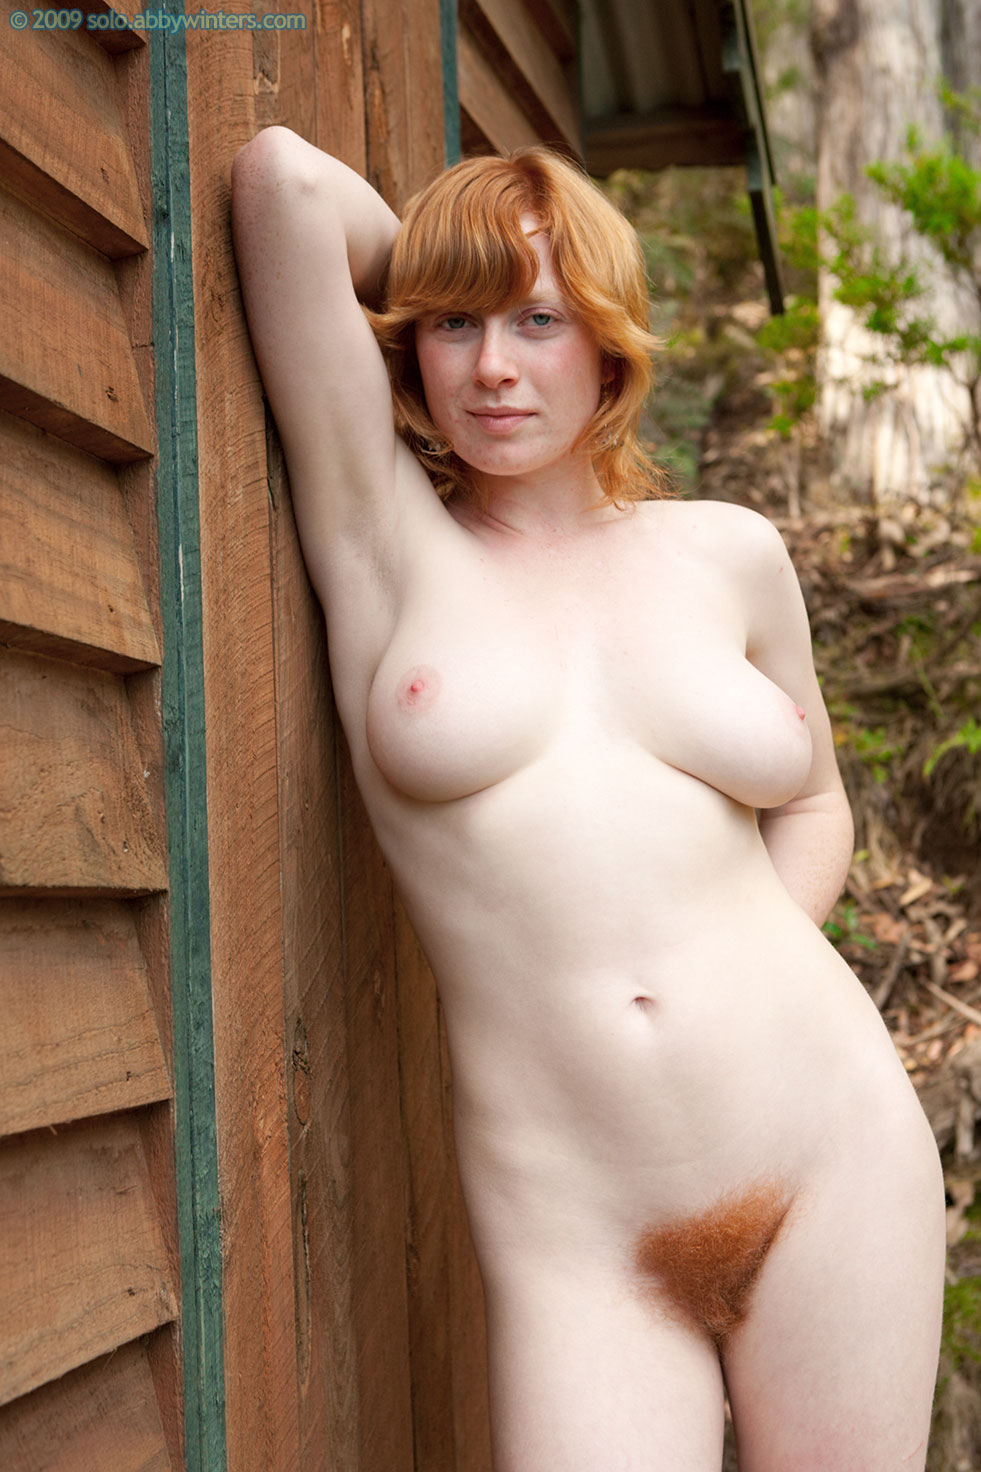 Think, that sexy redhead woman nude